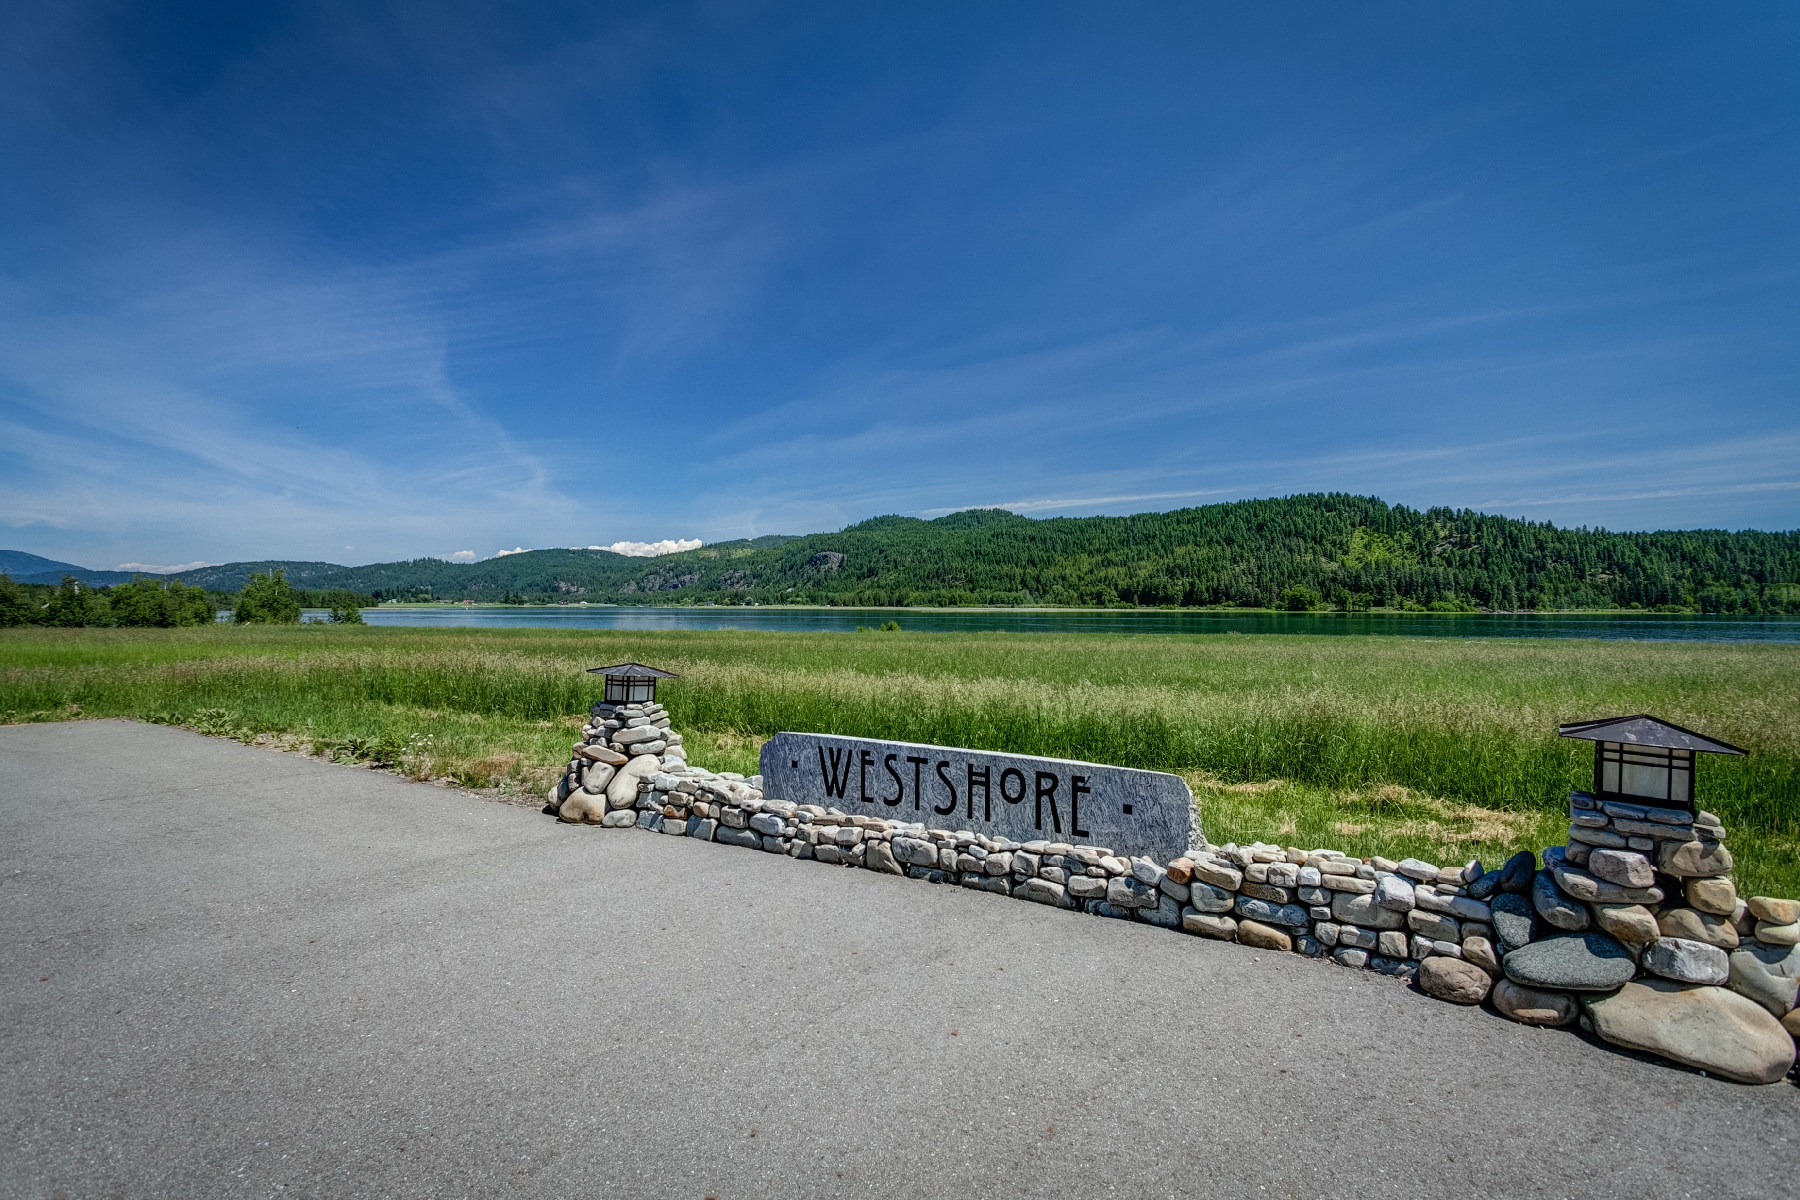 Land for Sale at Westshore Waterfront Building Sites Lot 7 Westshore Way Laclede, Idaho 83841 United States